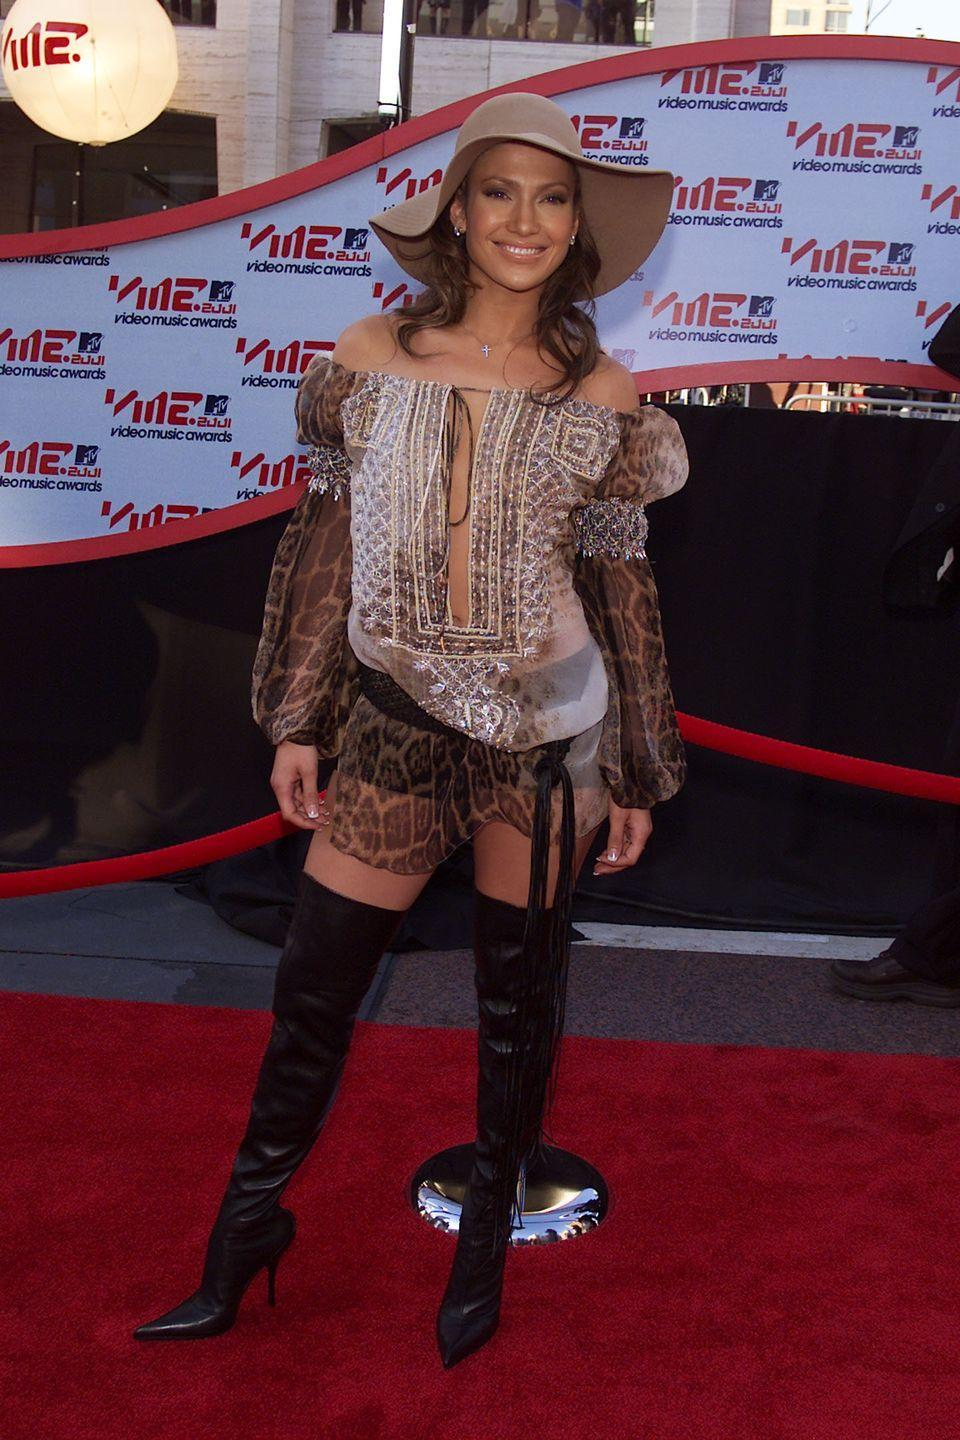 <p>This one was a practical look: J.Lo's sun-hat and thigh-high boots eliminated any need for SPF.</p>